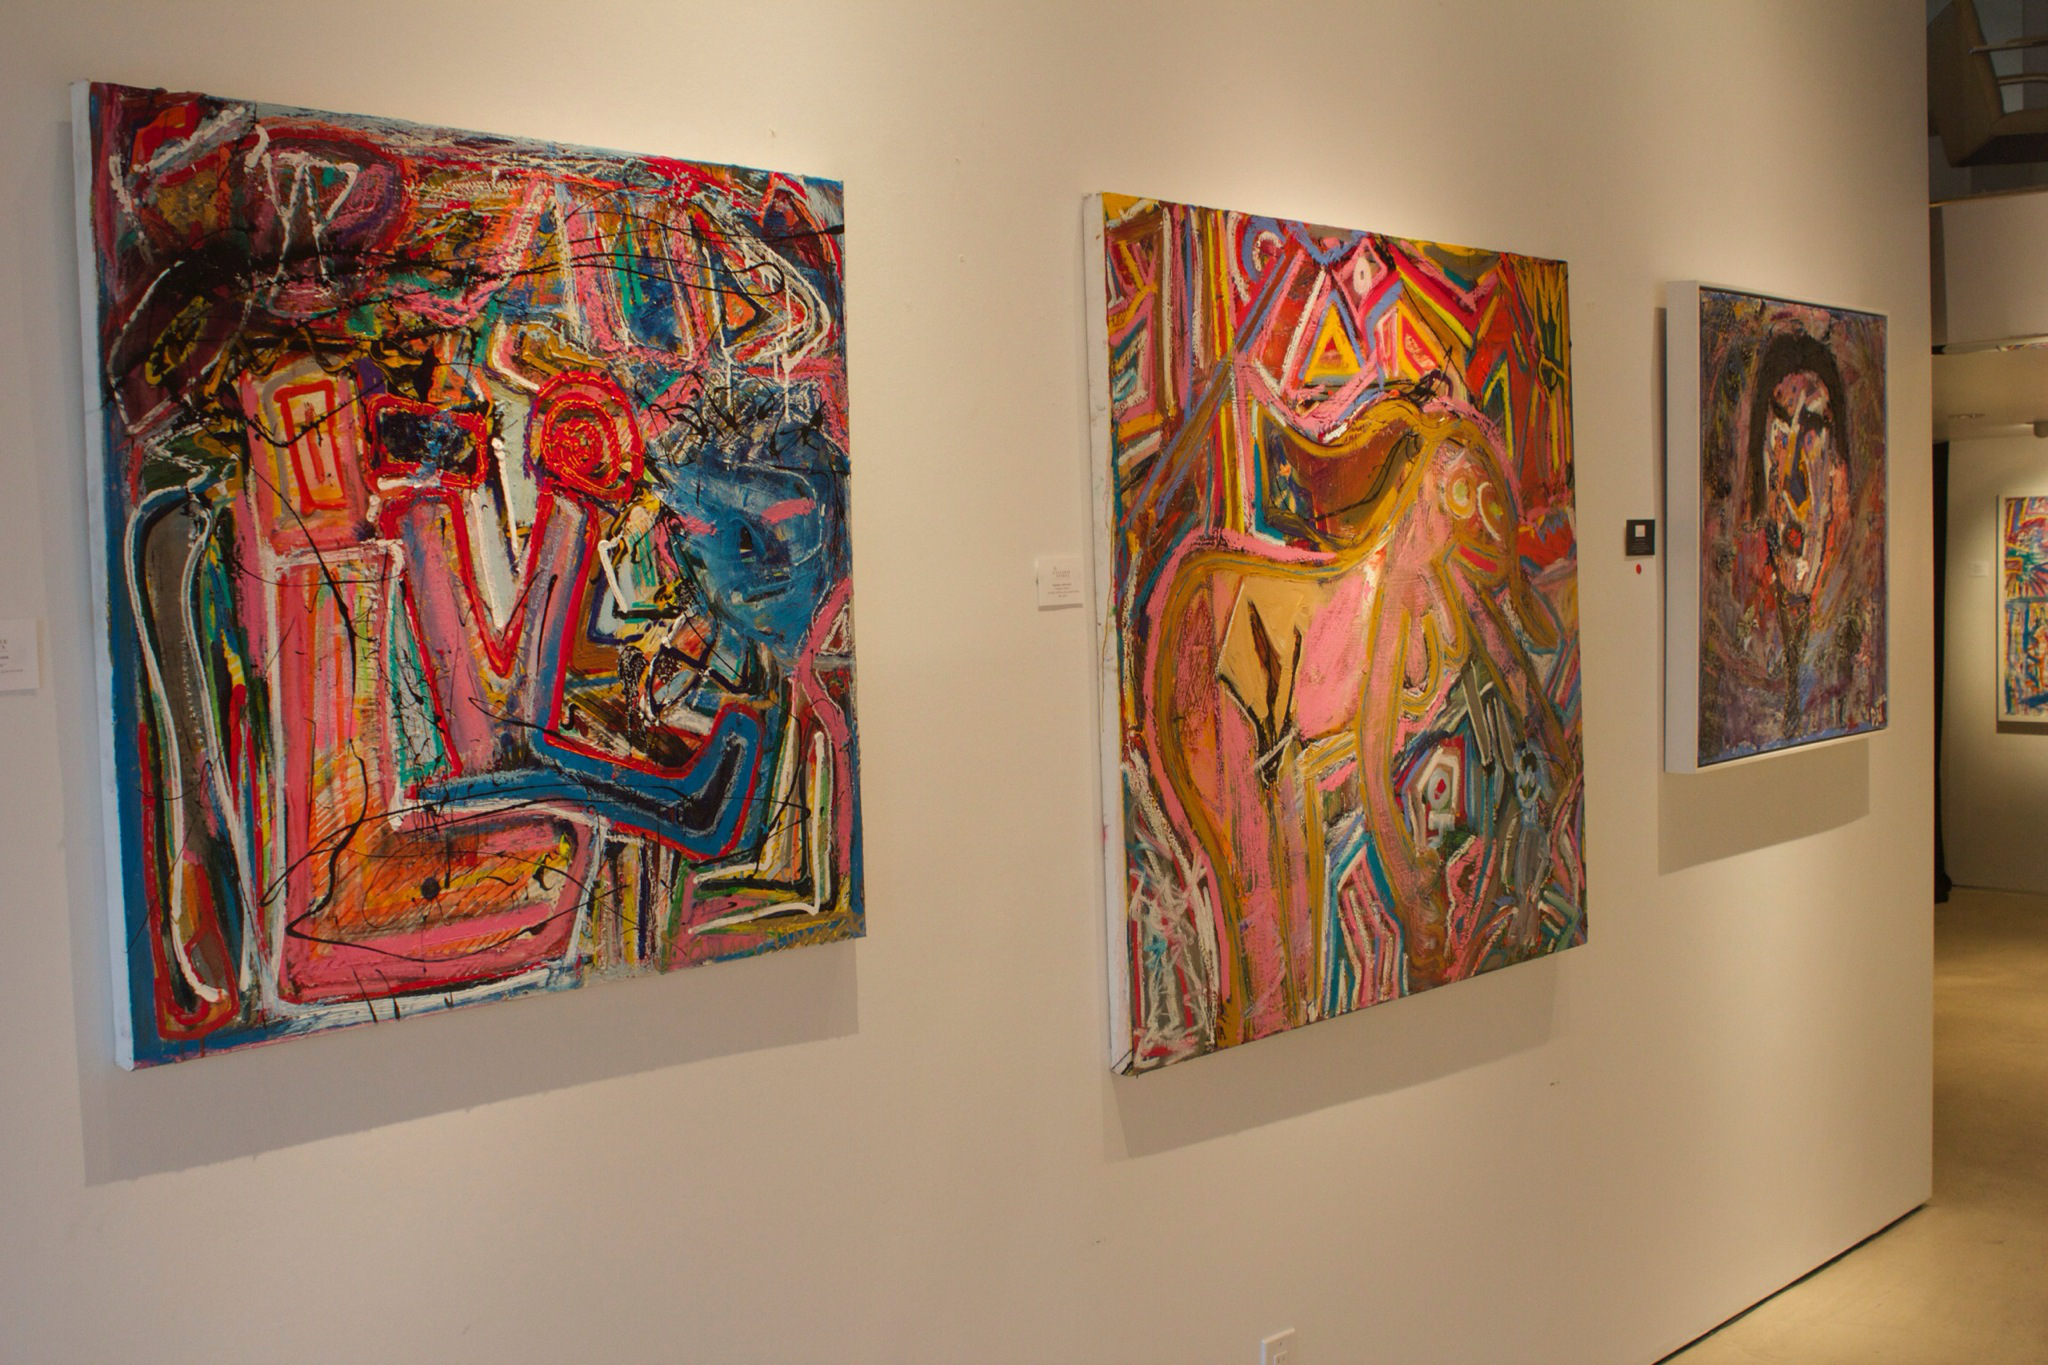 Gallerie Sparta Art (Image courtesy of Gallerie Sparta)